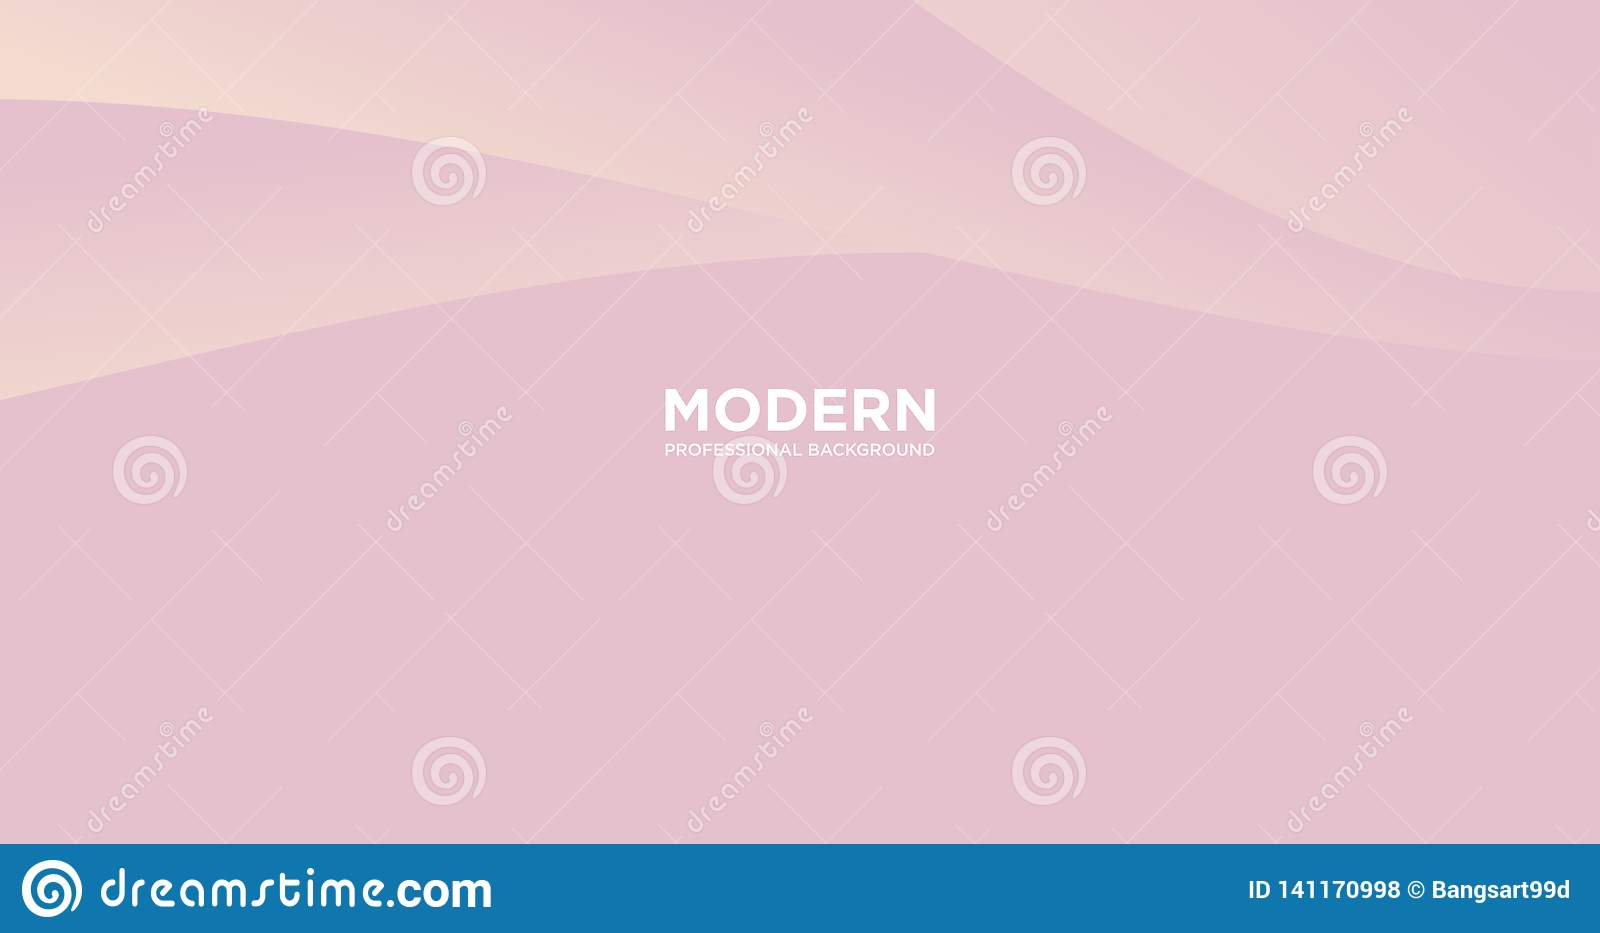 Modern Professional Abstract Background Stock Illustration